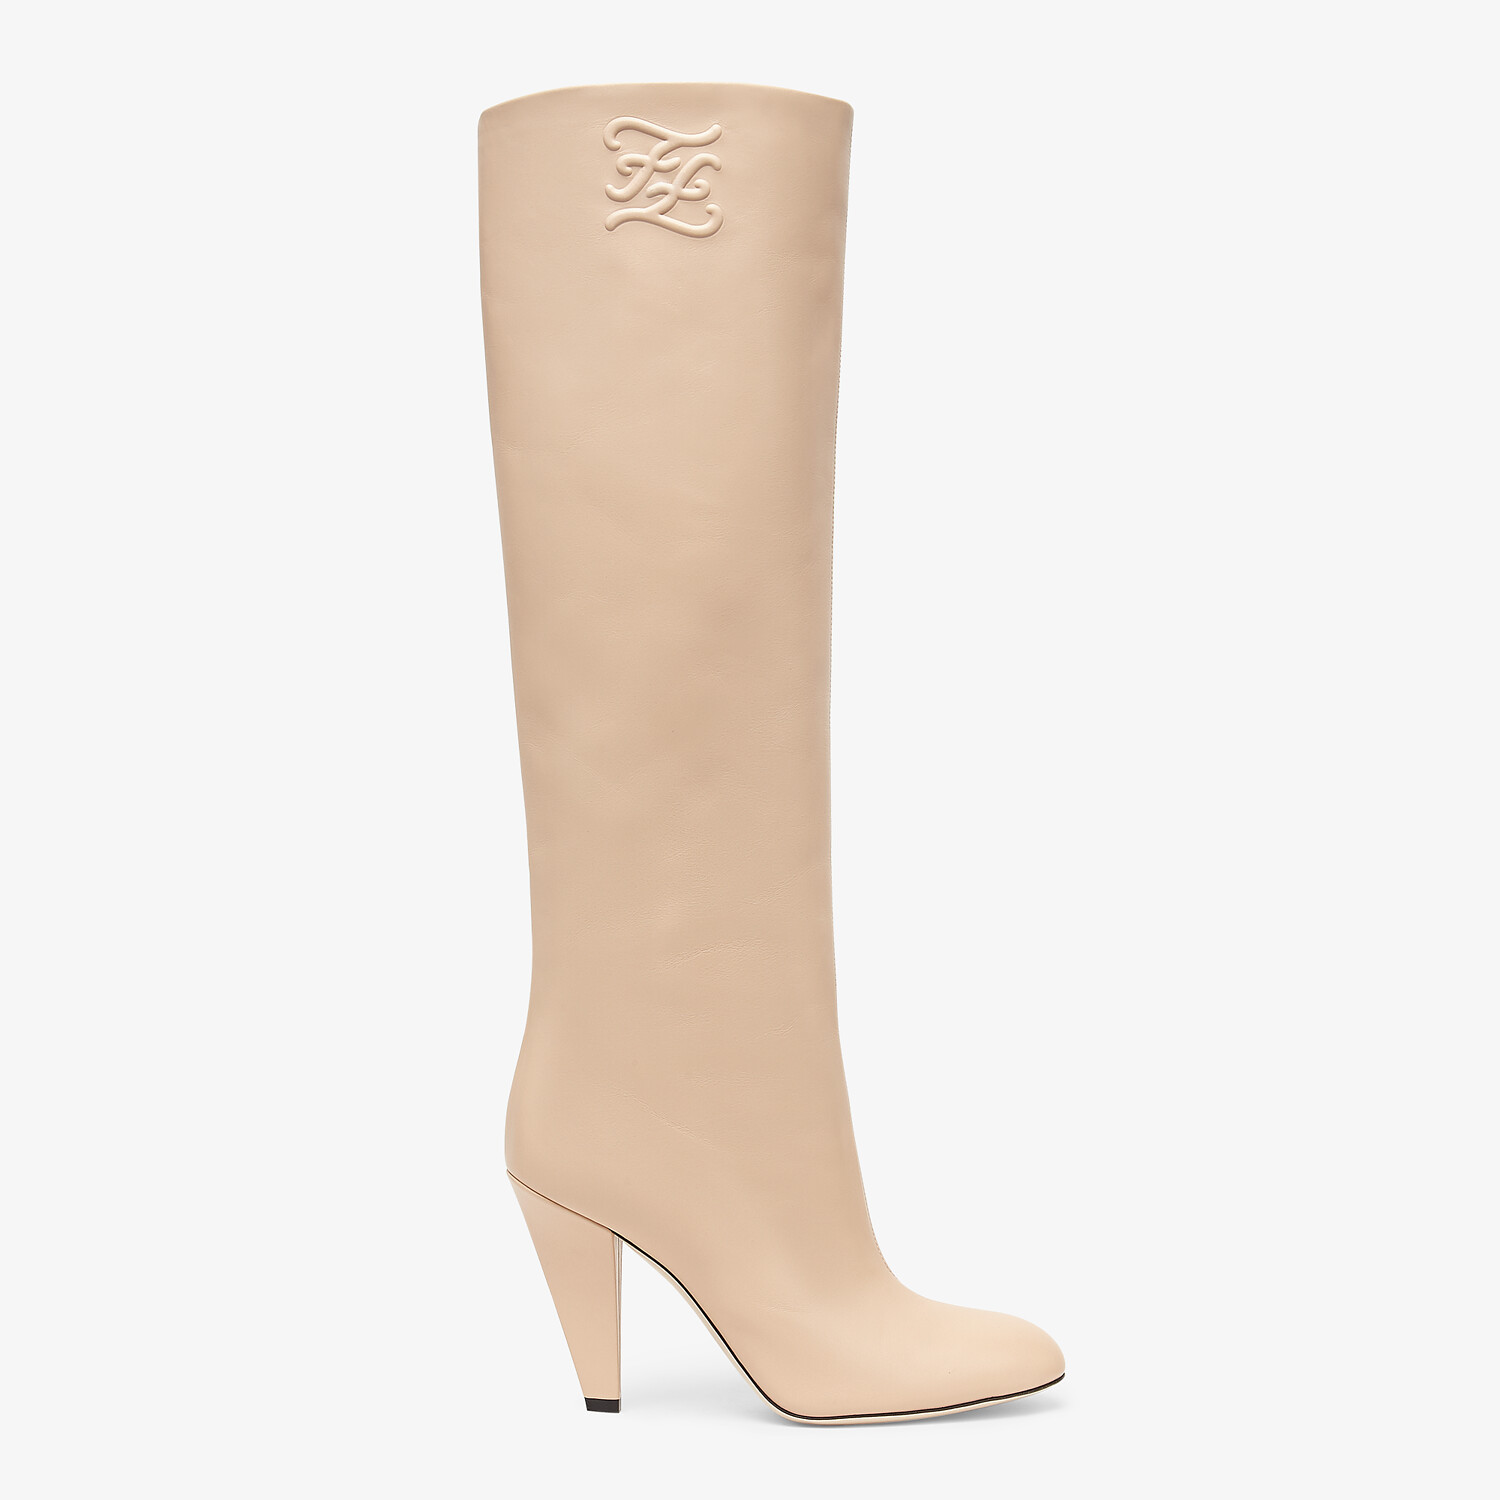 FENDI KARLIGRAPHY - Pink leather, high-heeled boots - view 1 detail